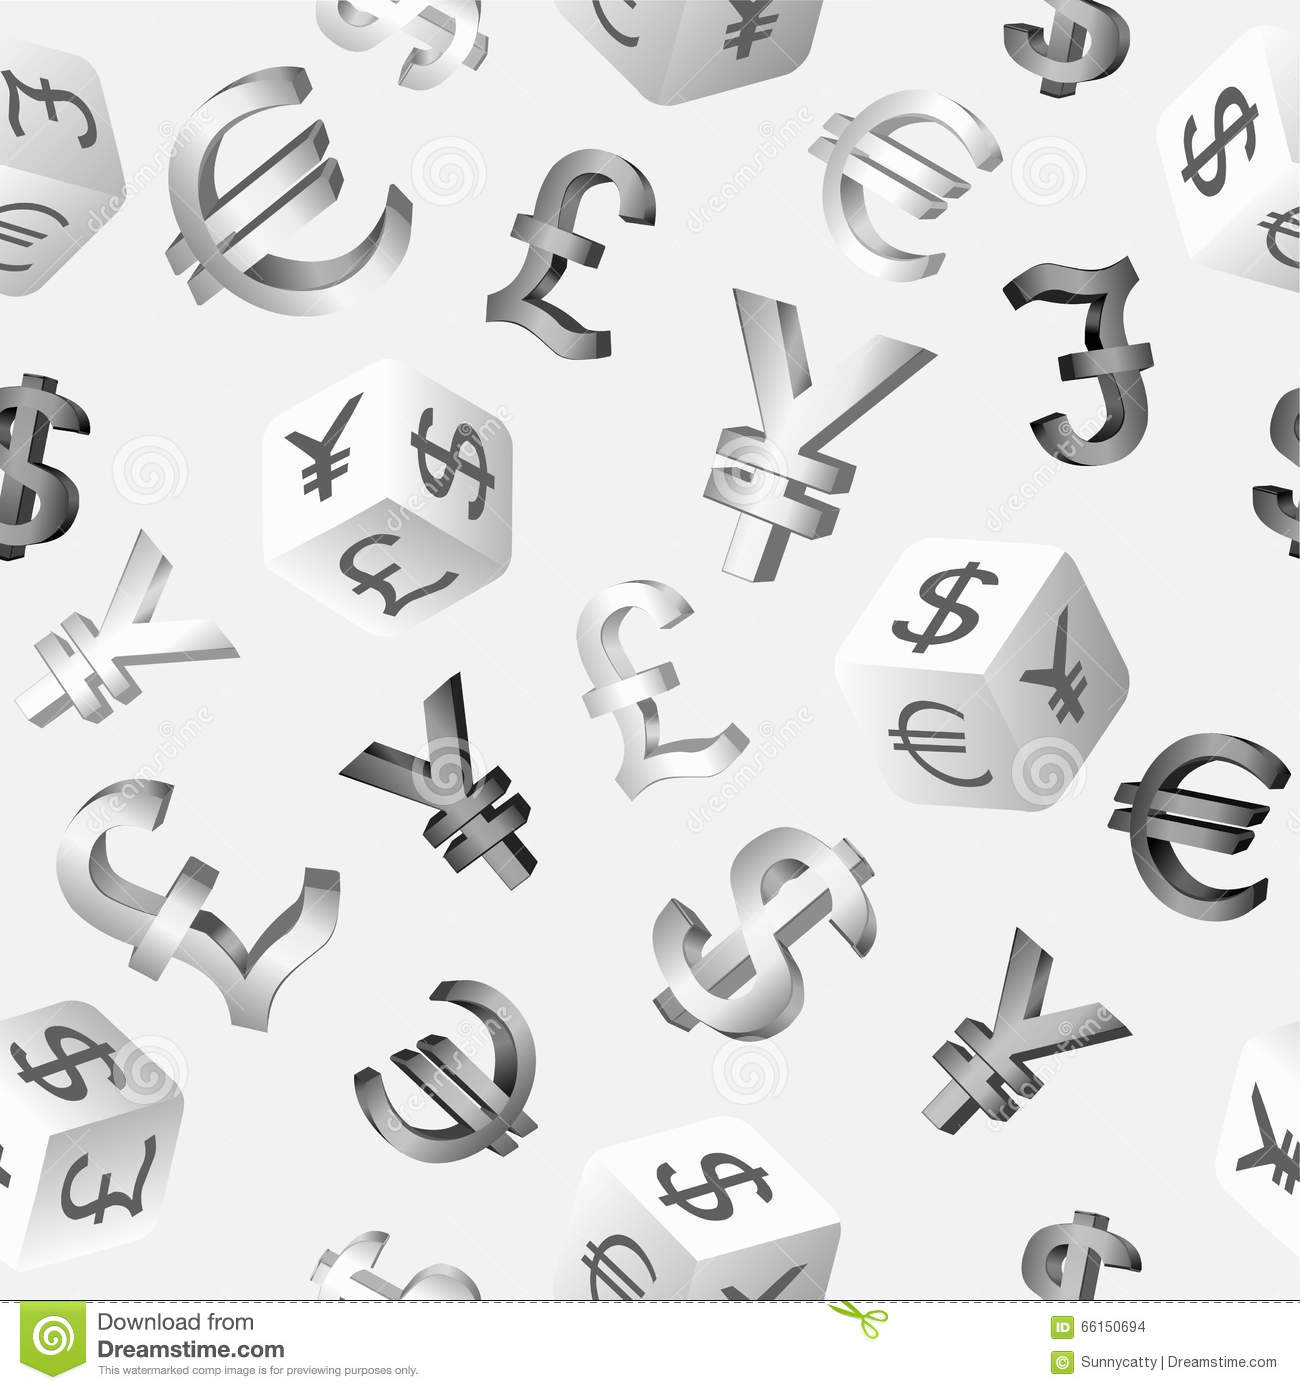 Seamless finance background with currency symbols dollar euro seamless finance background with currency symbols dollar euro pound yen yuan vector illustration biocorpaavc Image collections